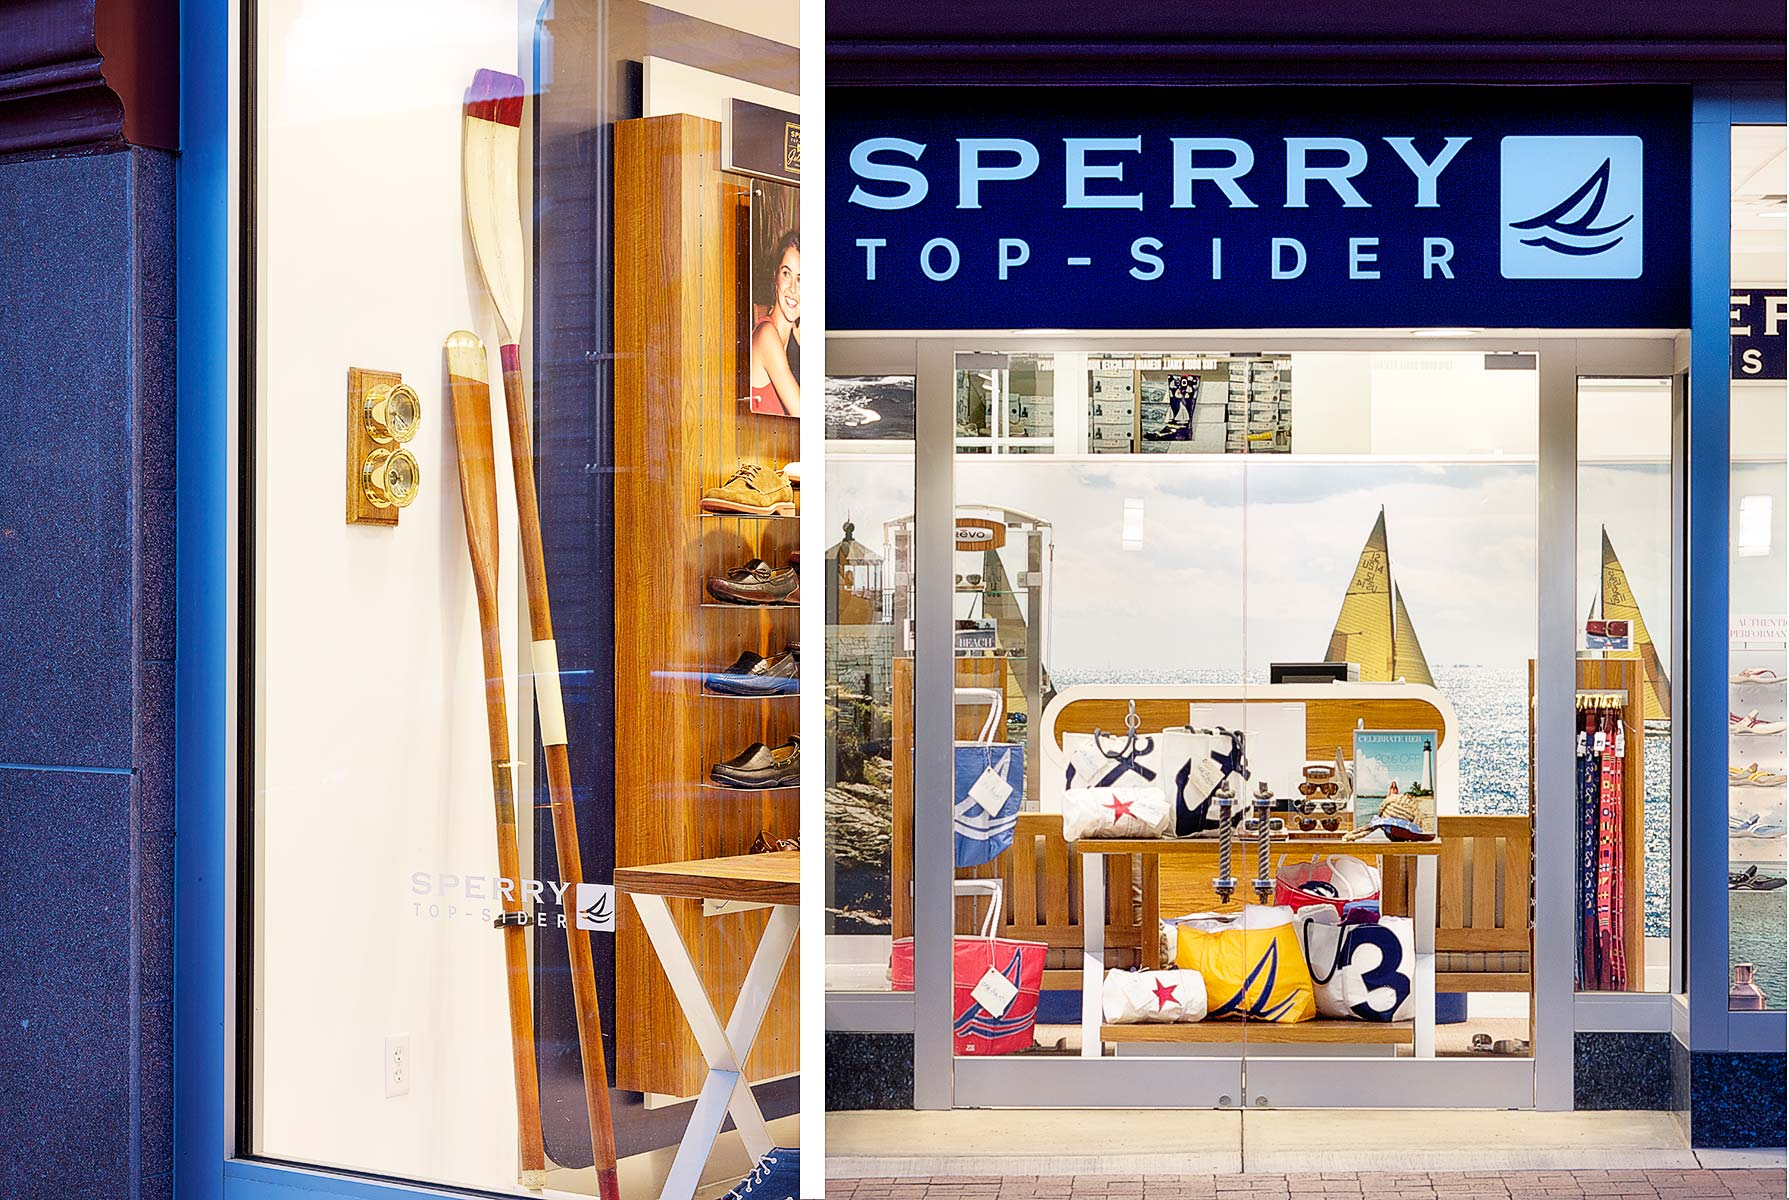 5310sperry1-28